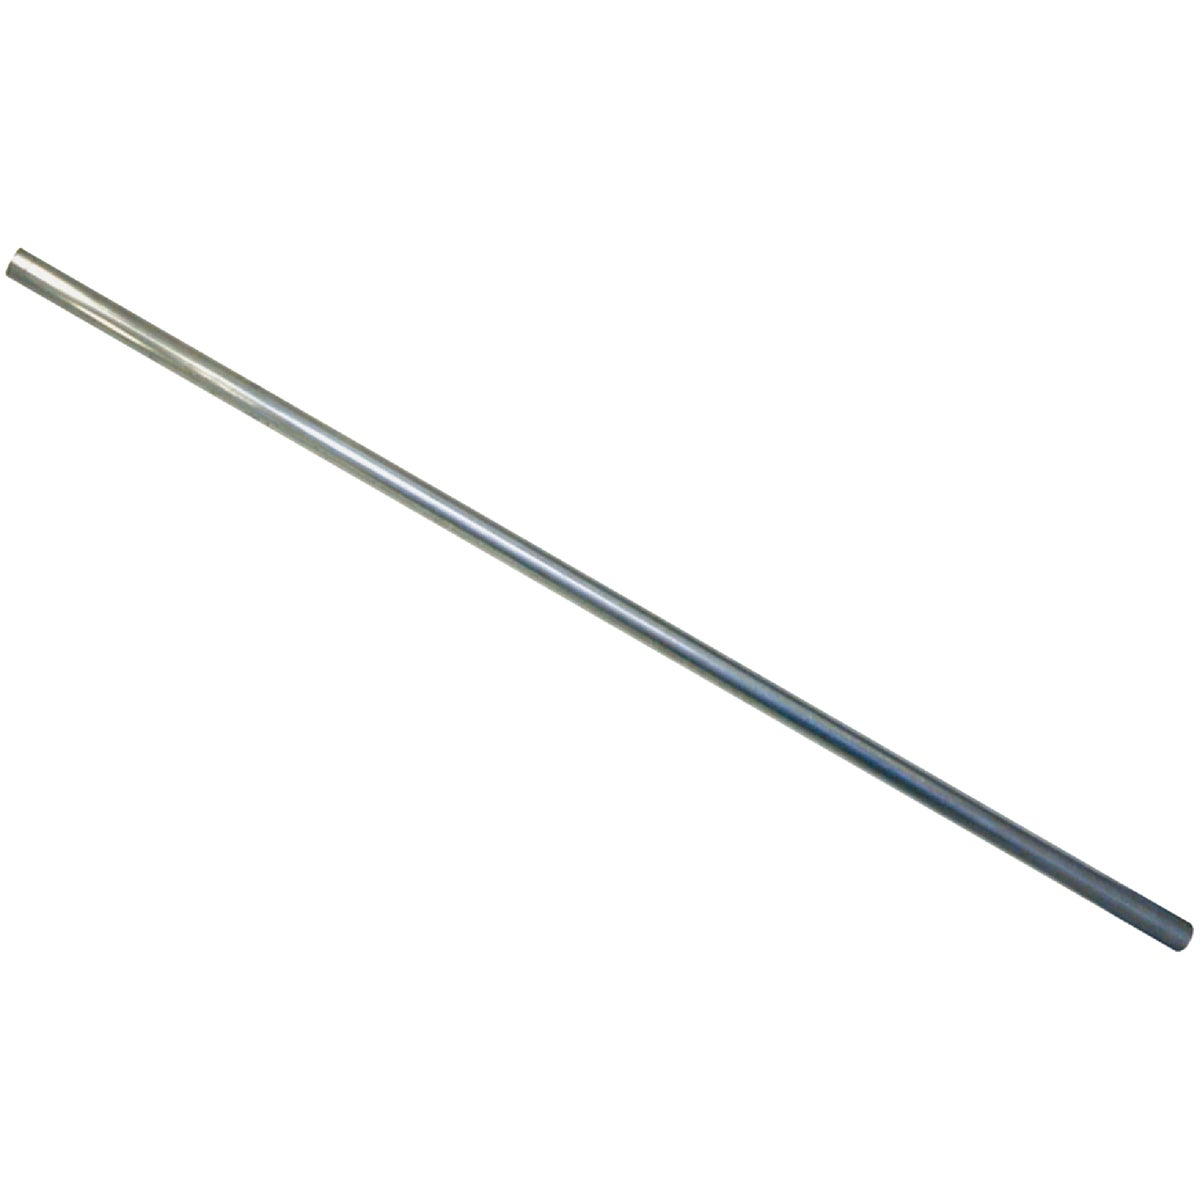 "1-5/8""X8' LINE POST - 328923DPT by Midwest Air Tech"